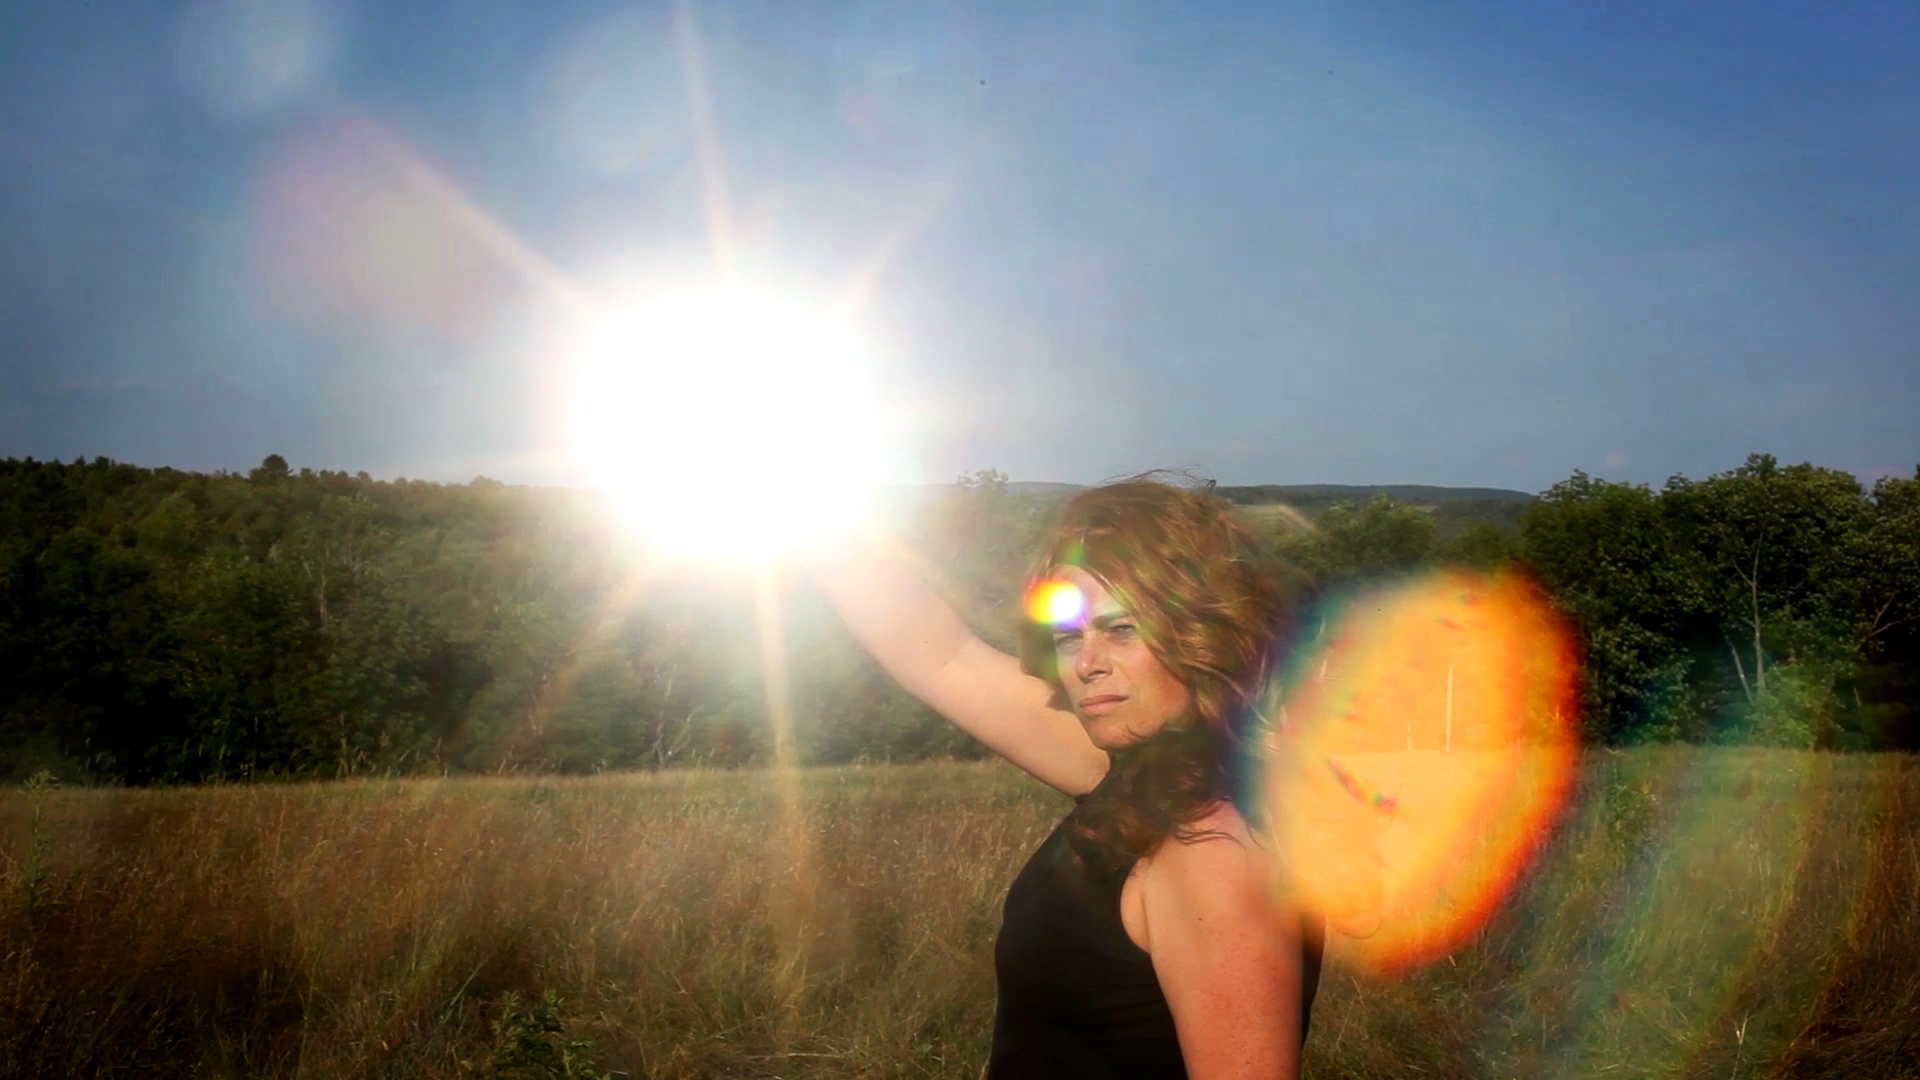 """Still from, """"Untitled (Sun in Hand),"""" by Lilly McElroy, 2016"""